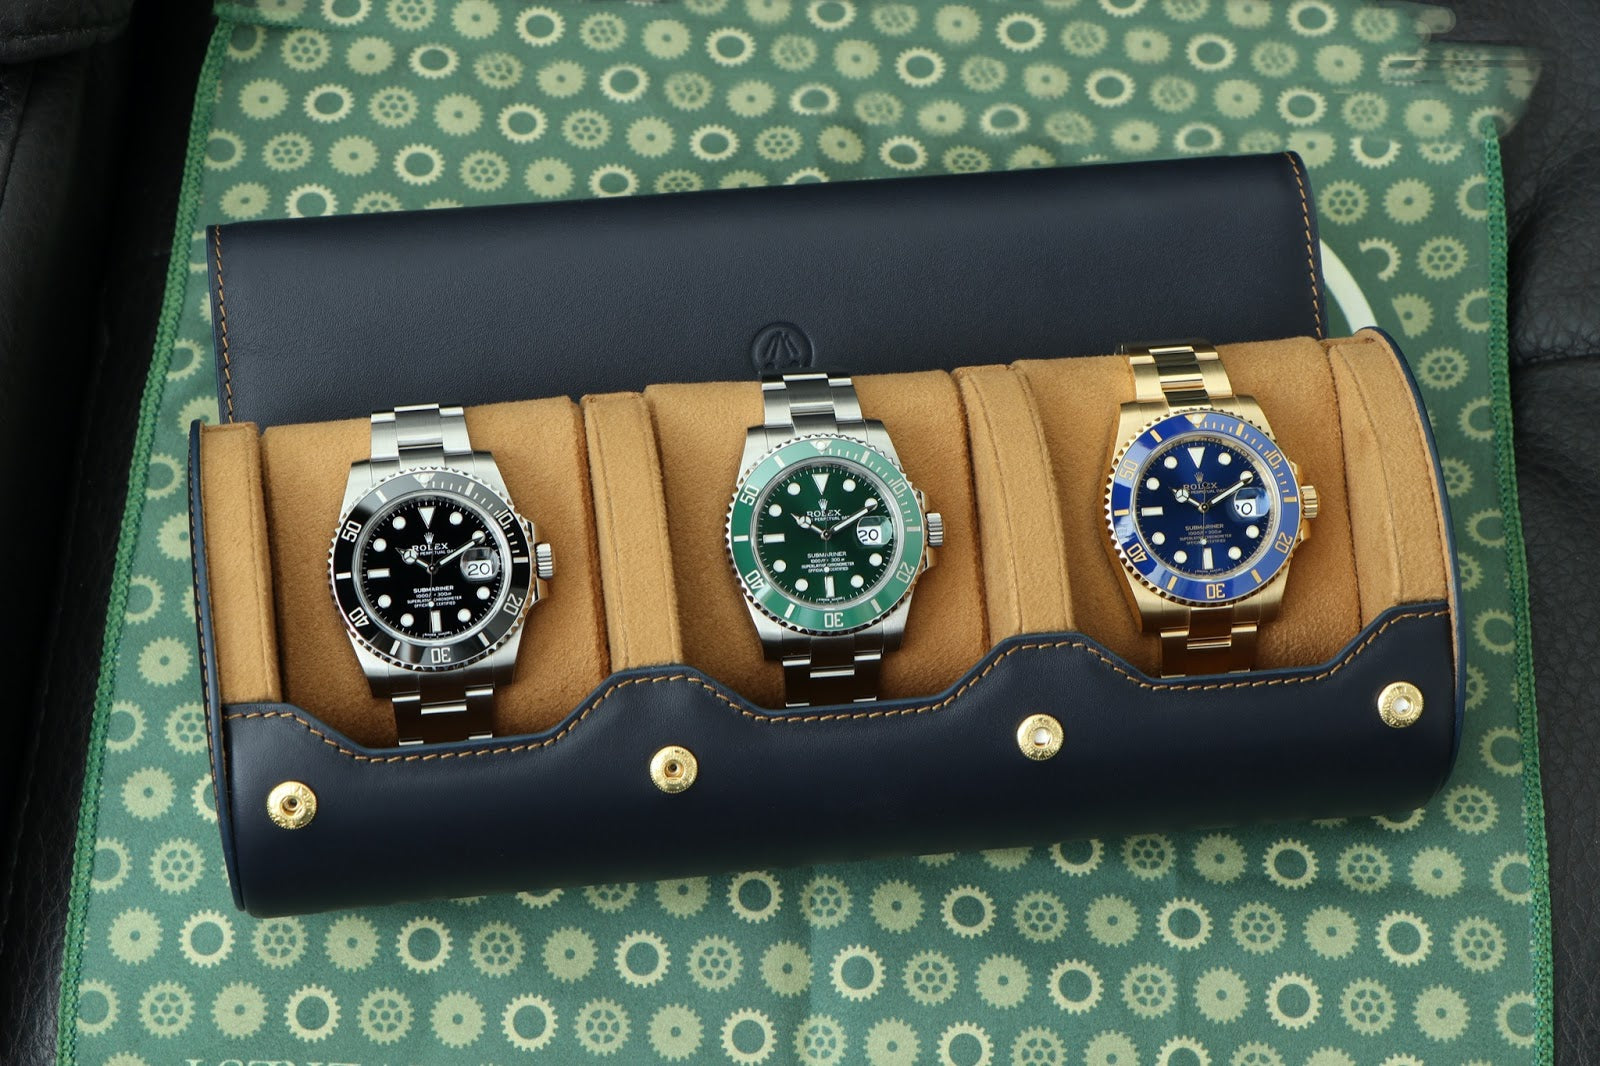 3 rolex sports watches in everest leather watch roll